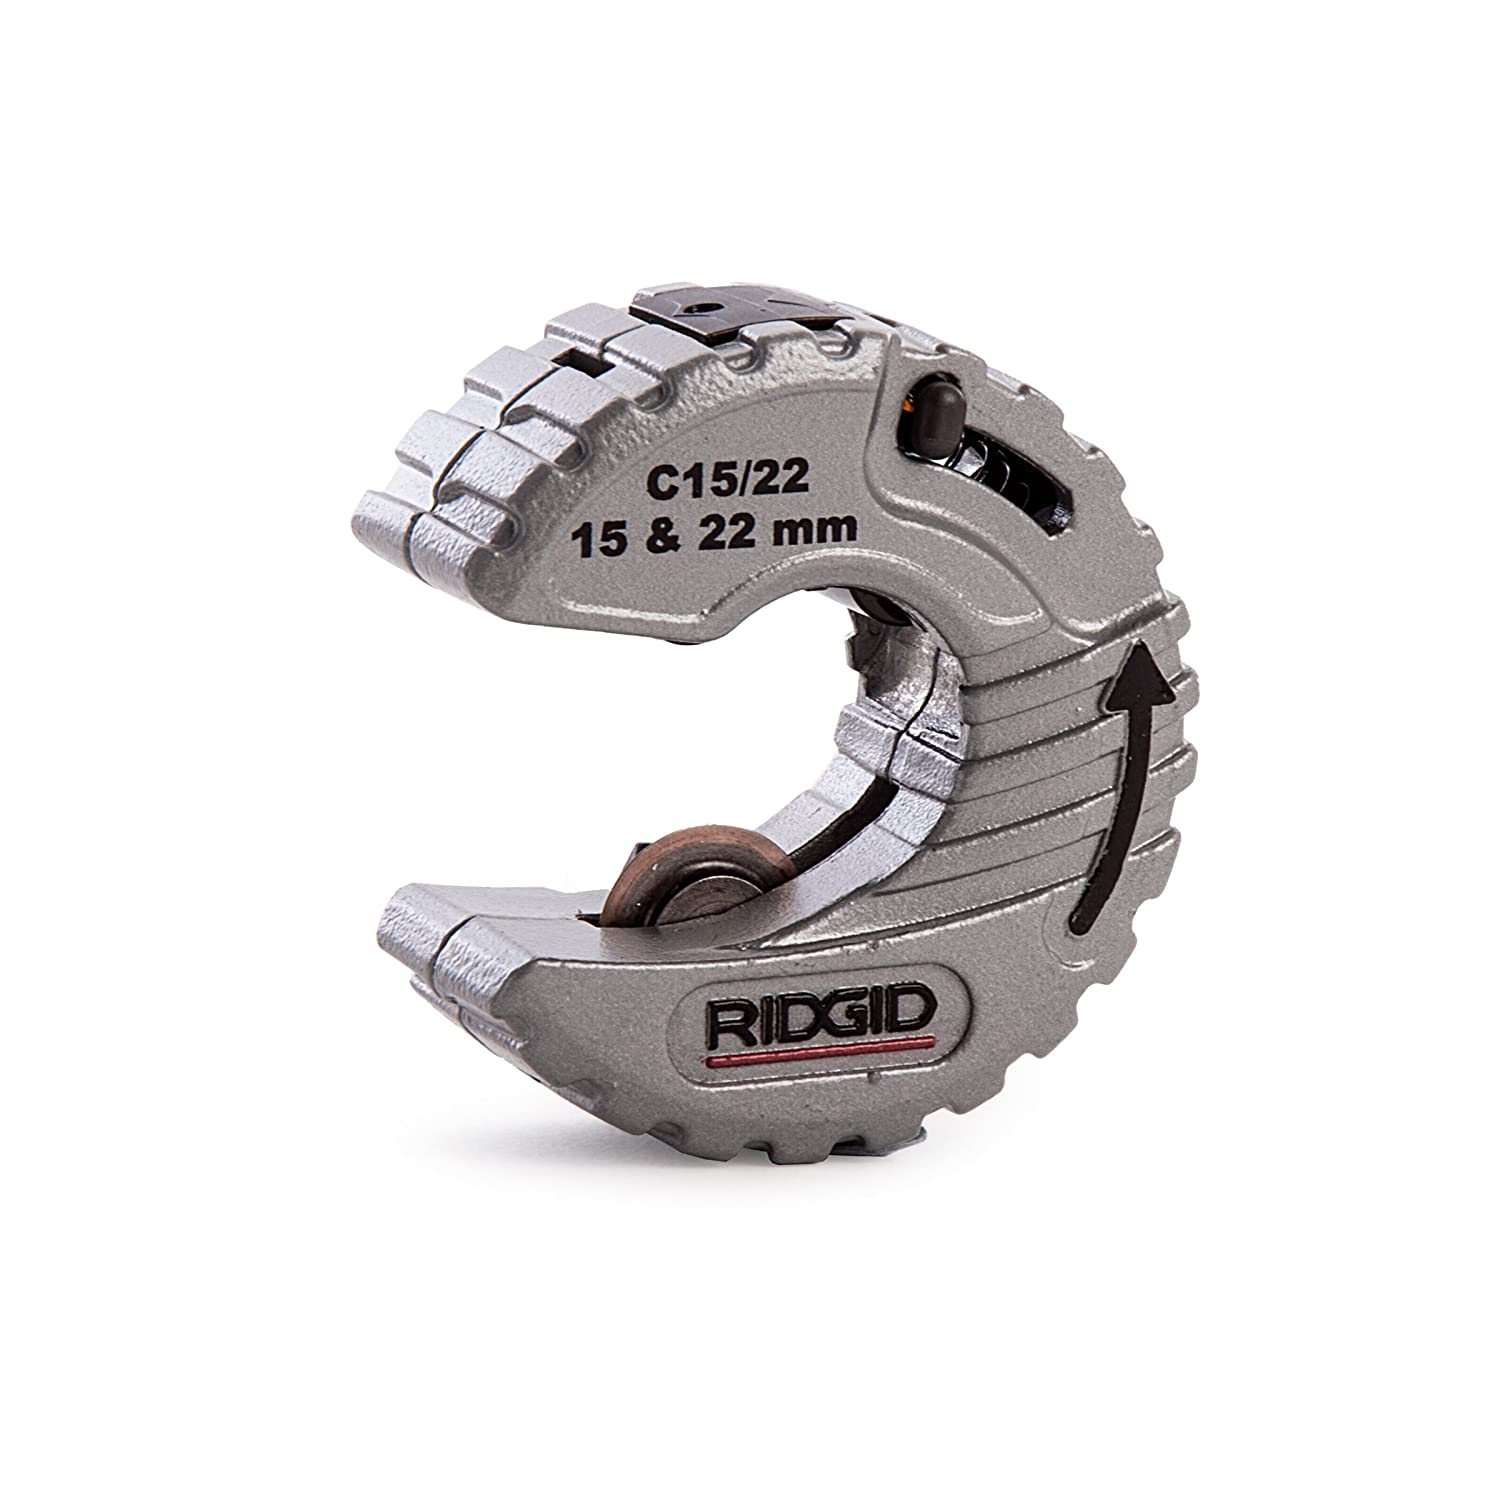 RIDGID RID57018 C-Style Copper Cutter, Multi-Colour, 15-22mm